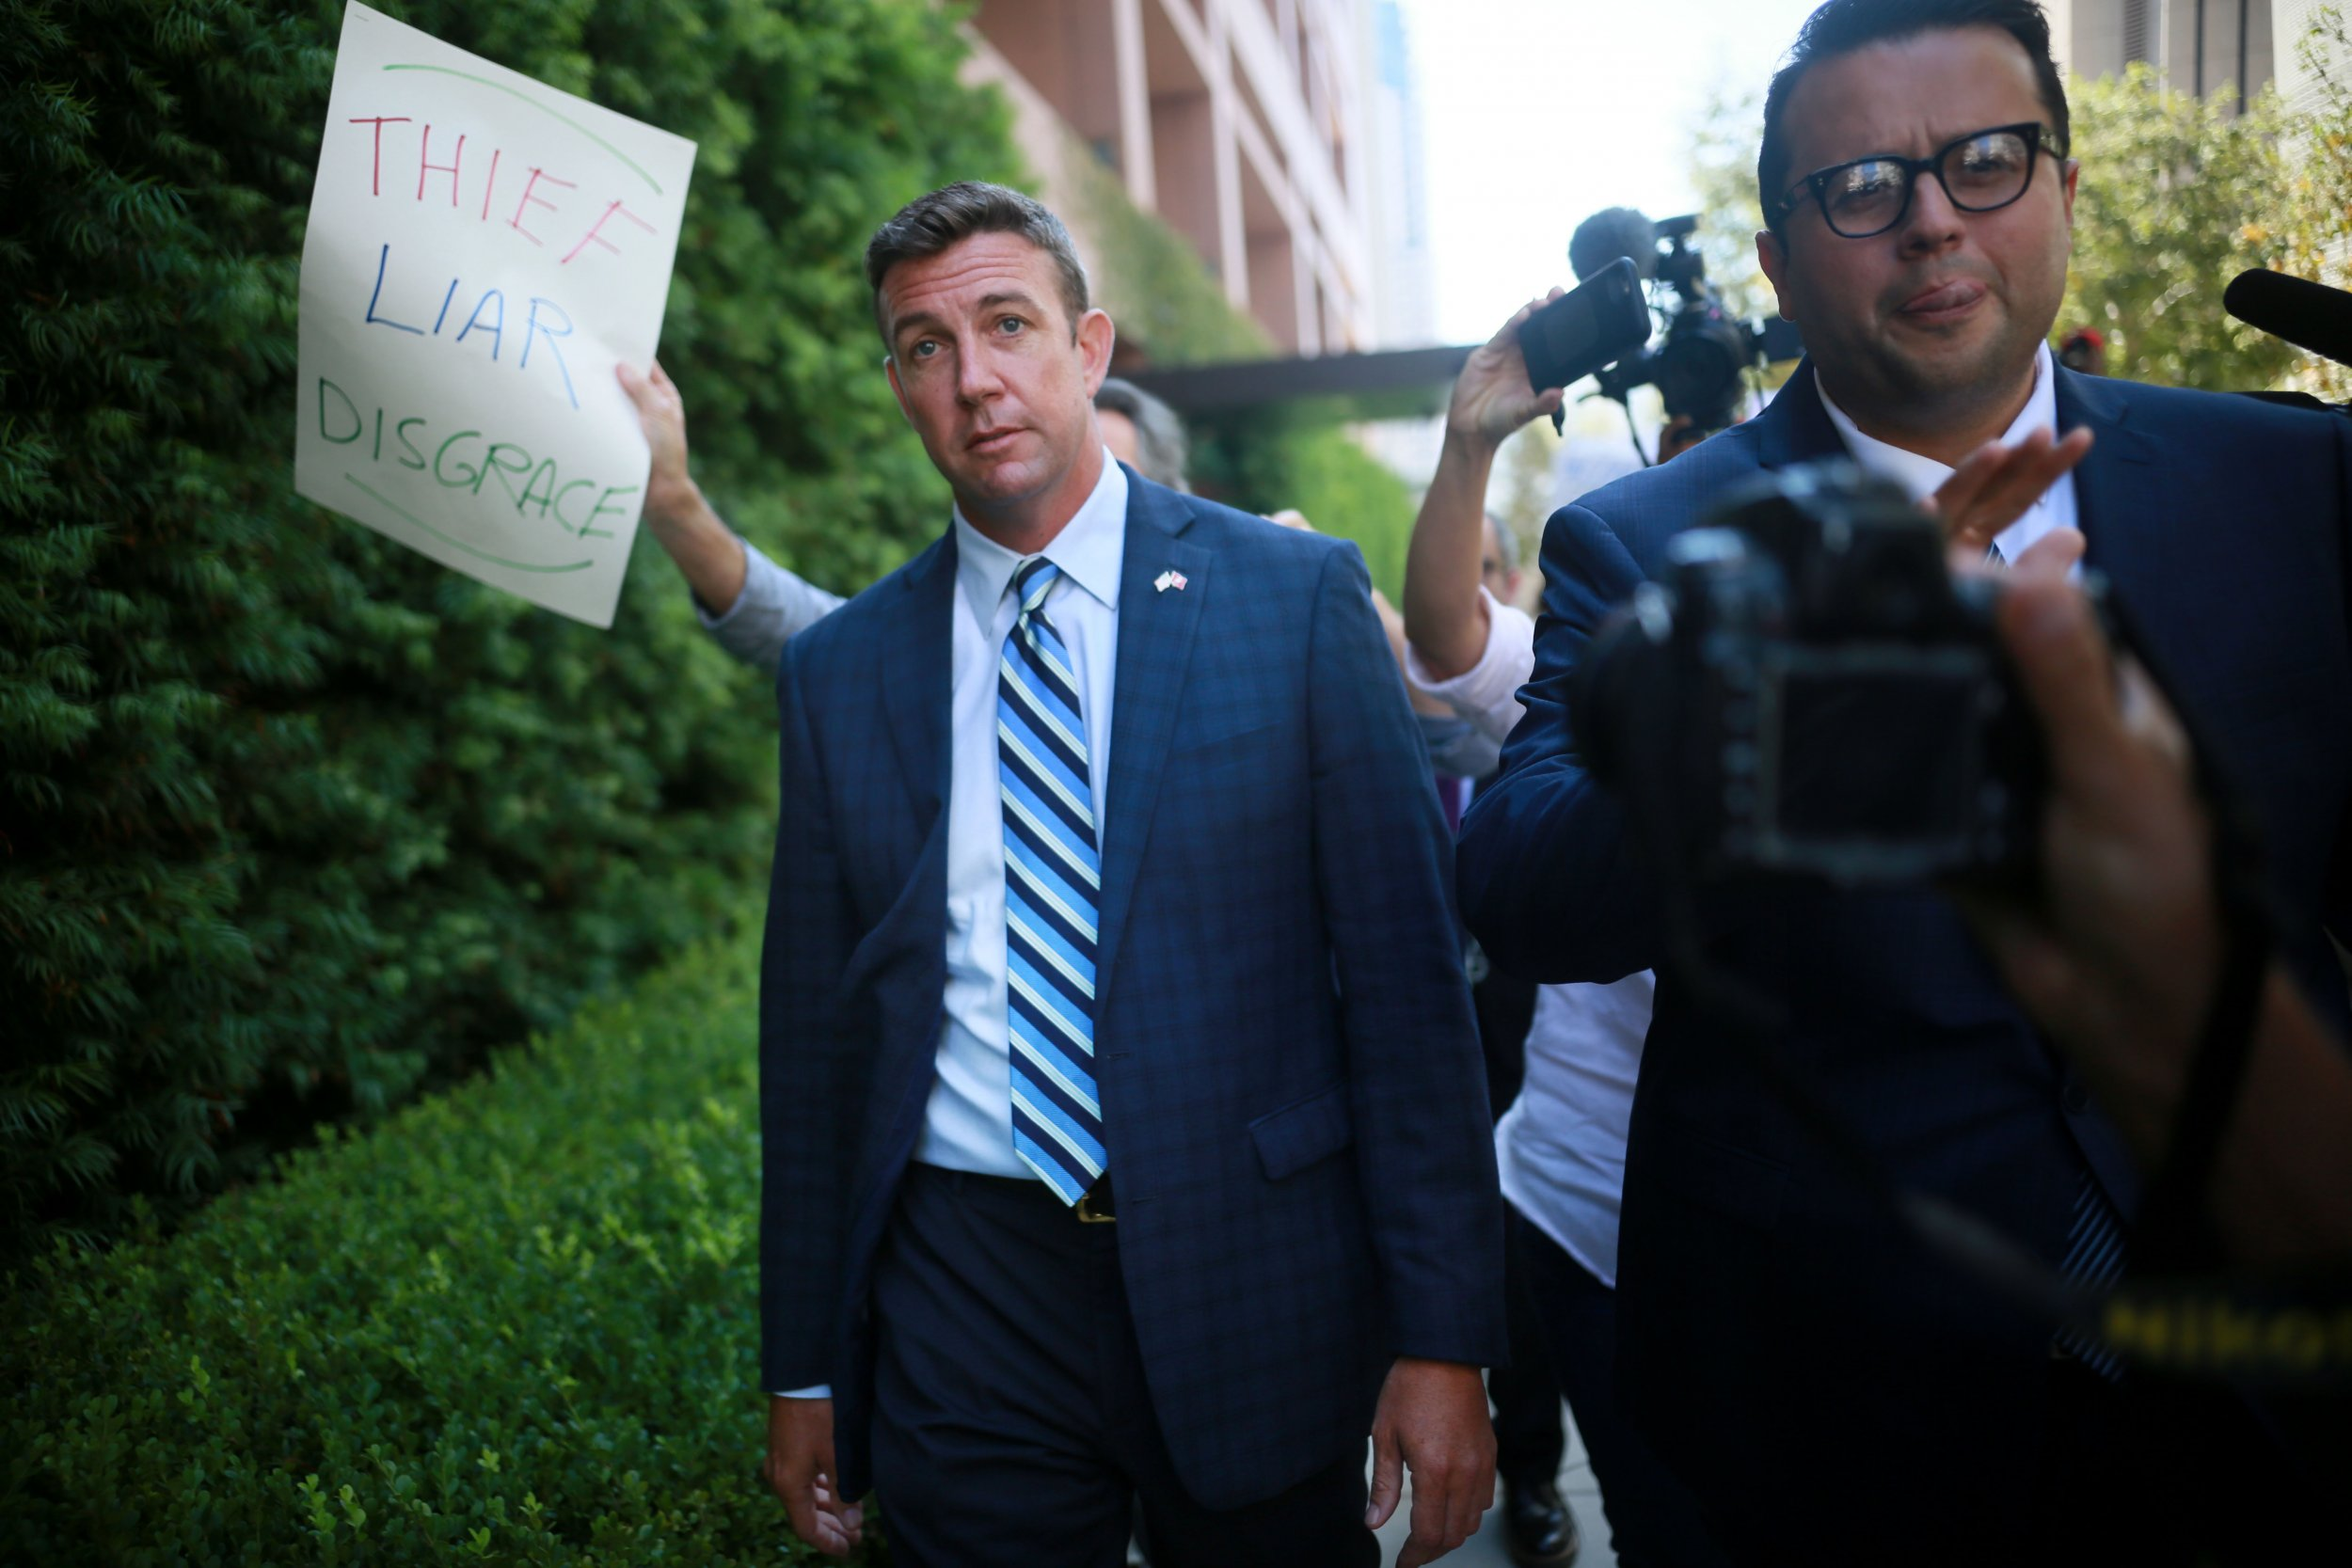 Indicted Congressman Duncan Hunter Continues False Anti-Muslim Attack Ads Against Democratic Opponent